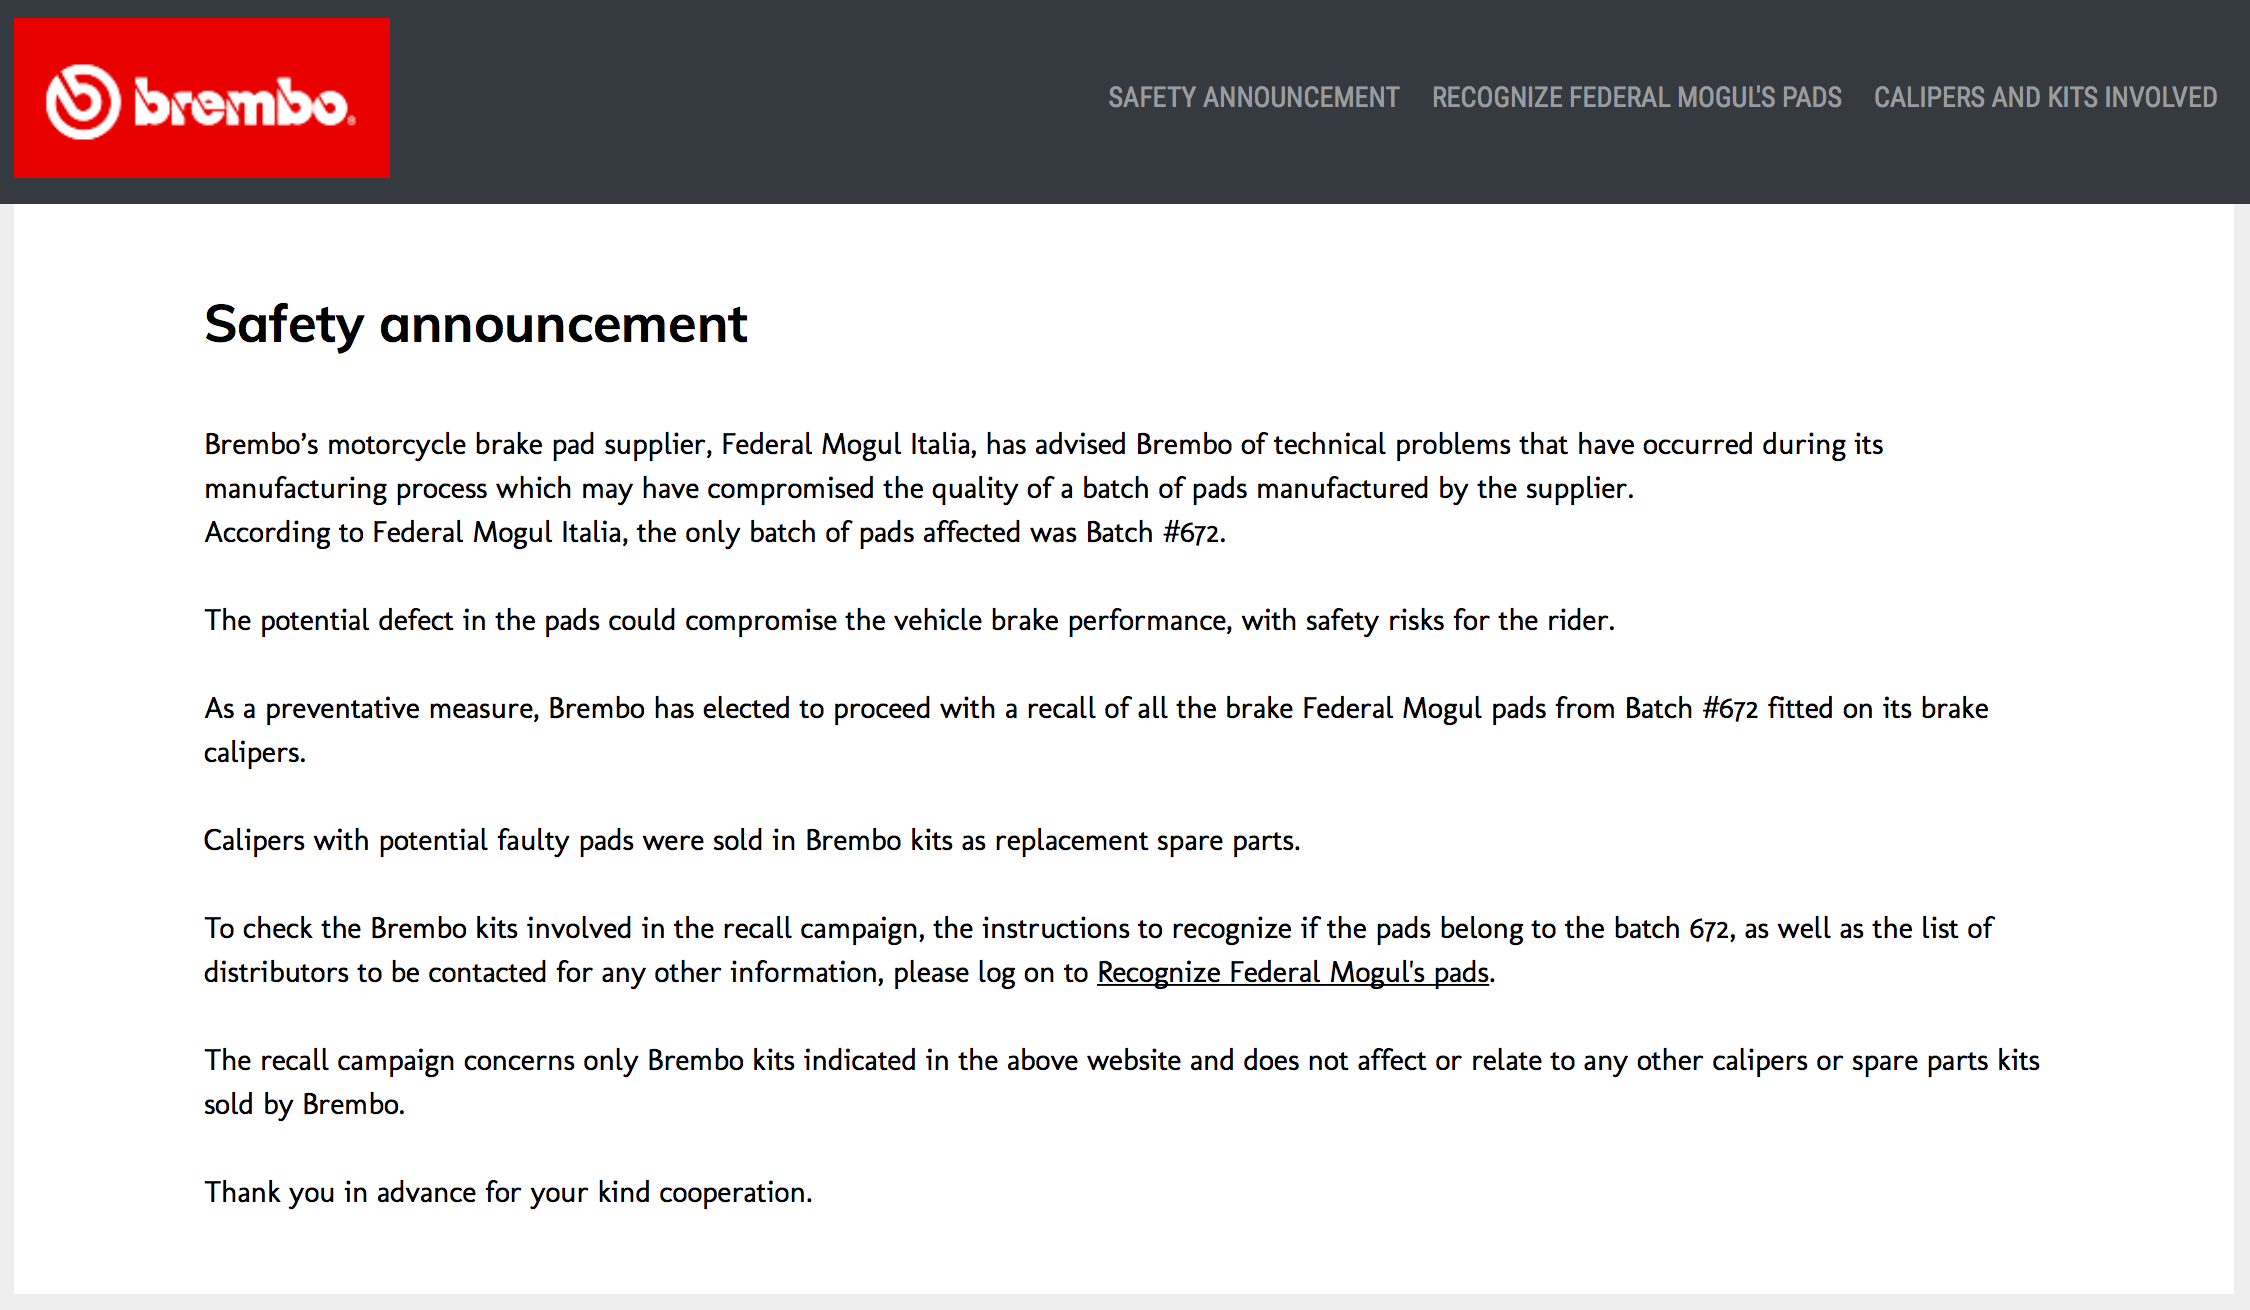 Brembo Hit with Second Major Safety Recall - BikesRepublic